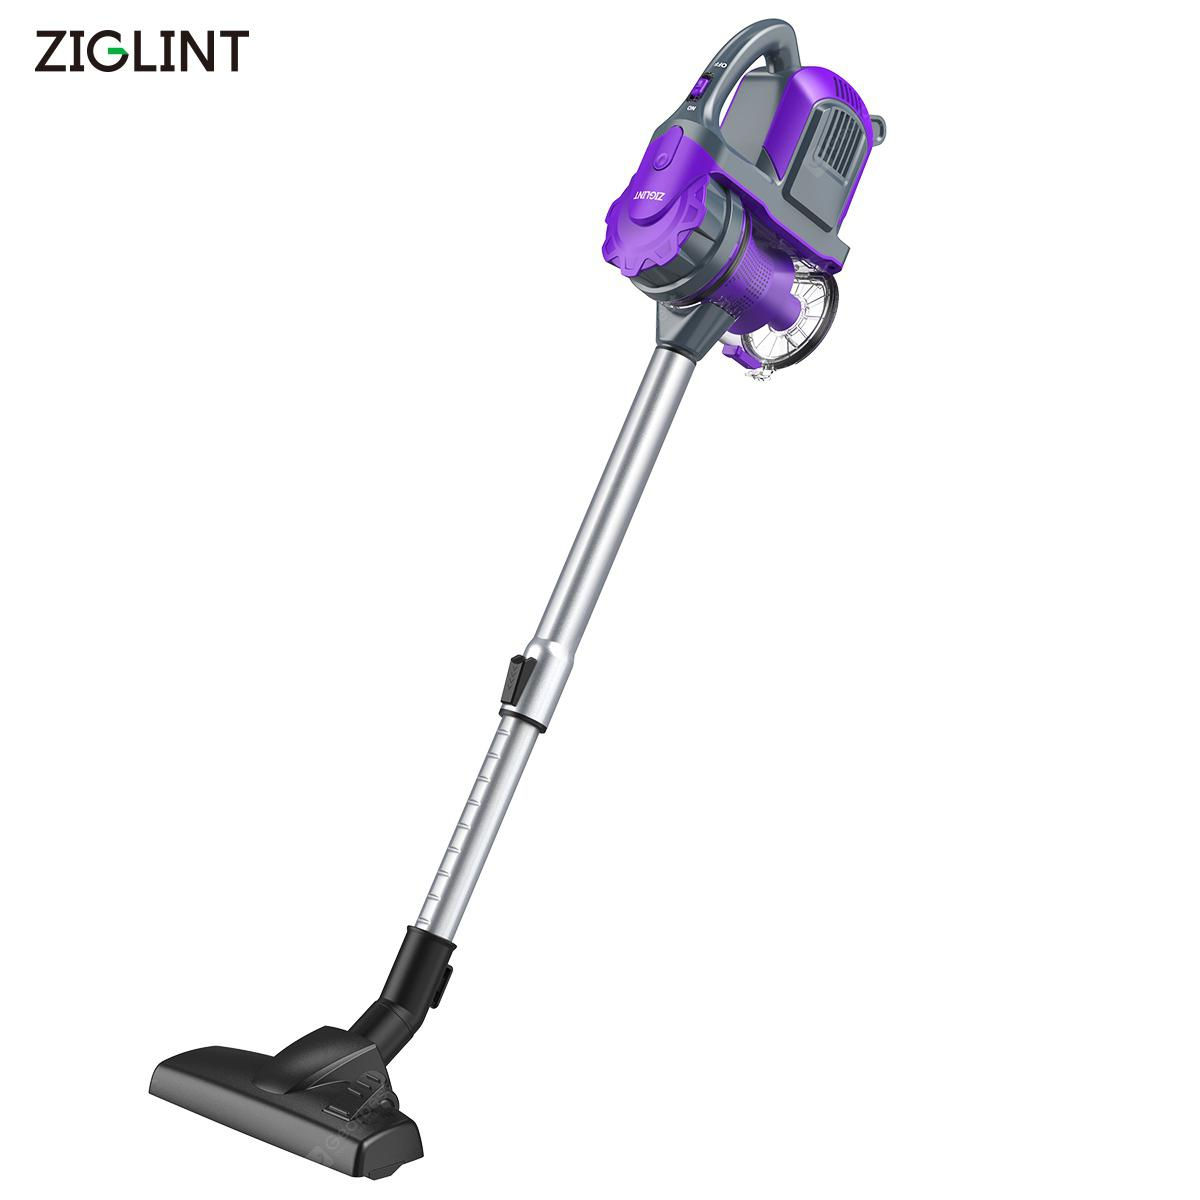 Portable Cordless Rechargeable Handheld Vacuum Cleaner Dust Cleaner 120W